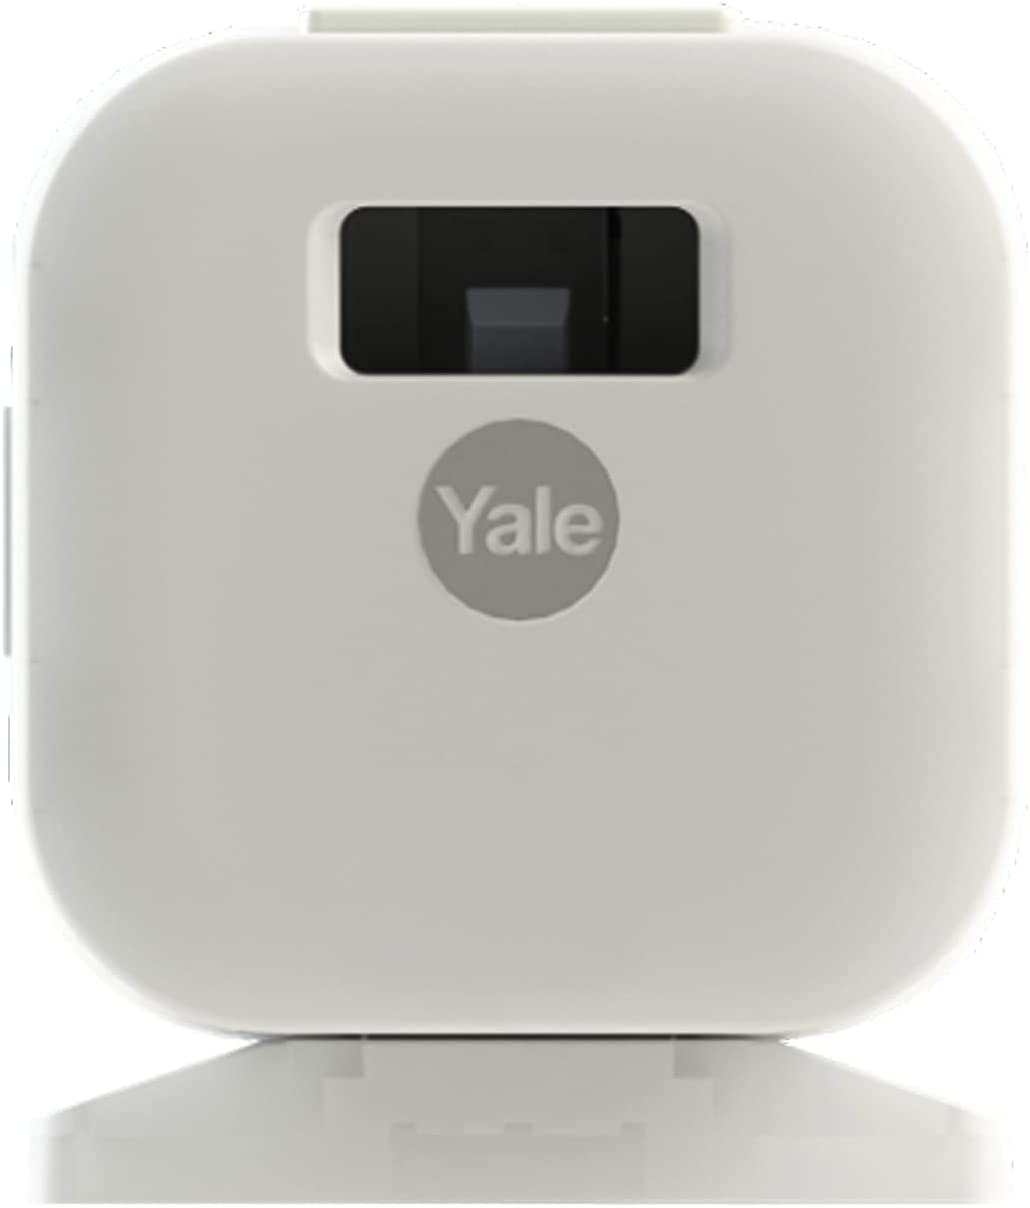 Secure your valuables with the Yale Smart Cabinet Lock with HomeKit support.